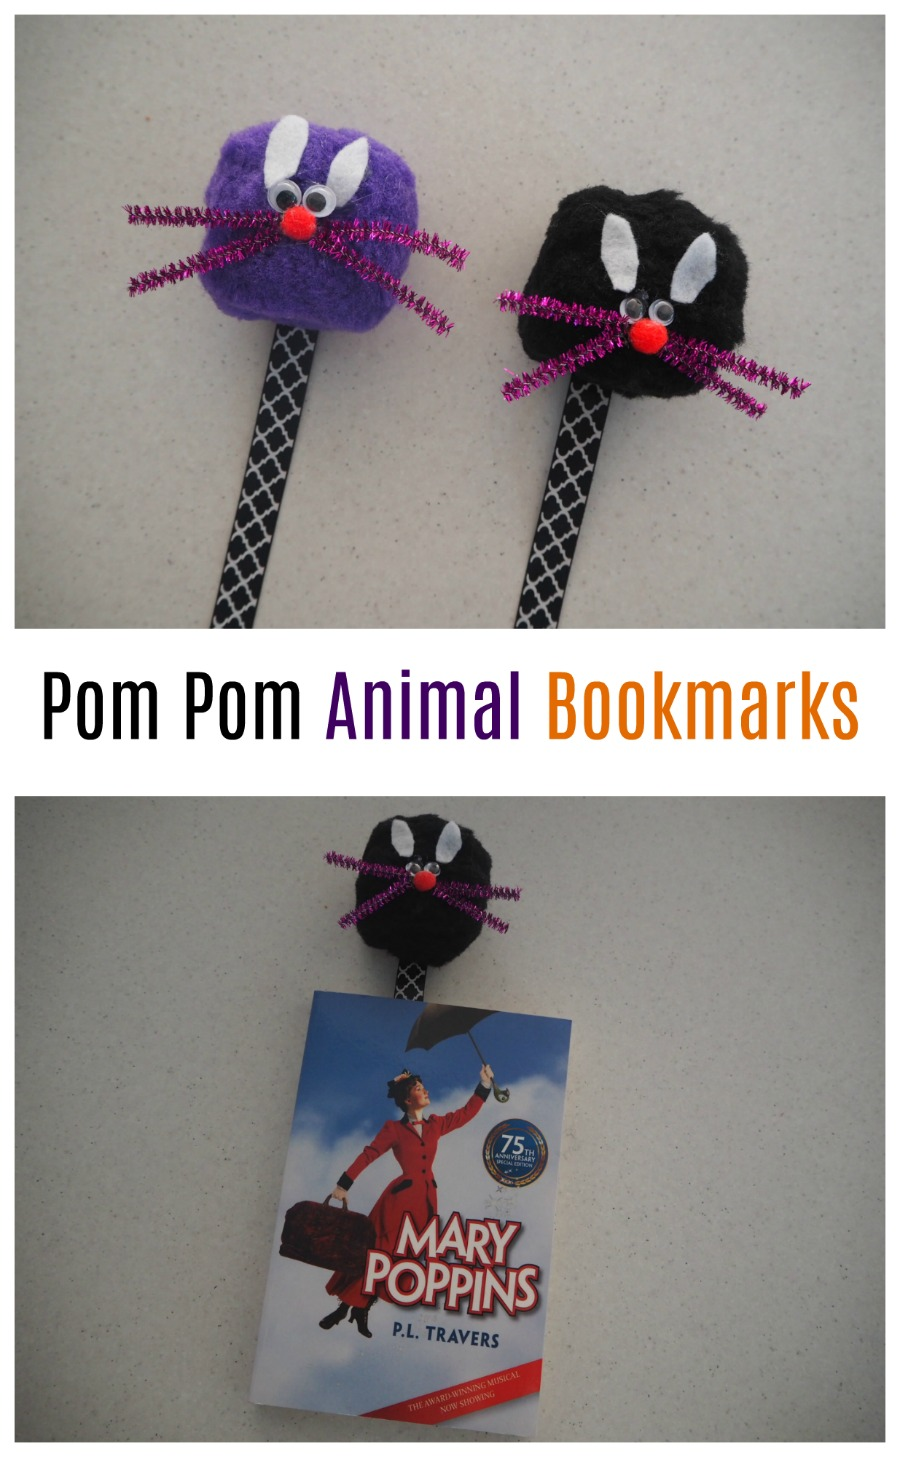 pom pom animal bookmarks